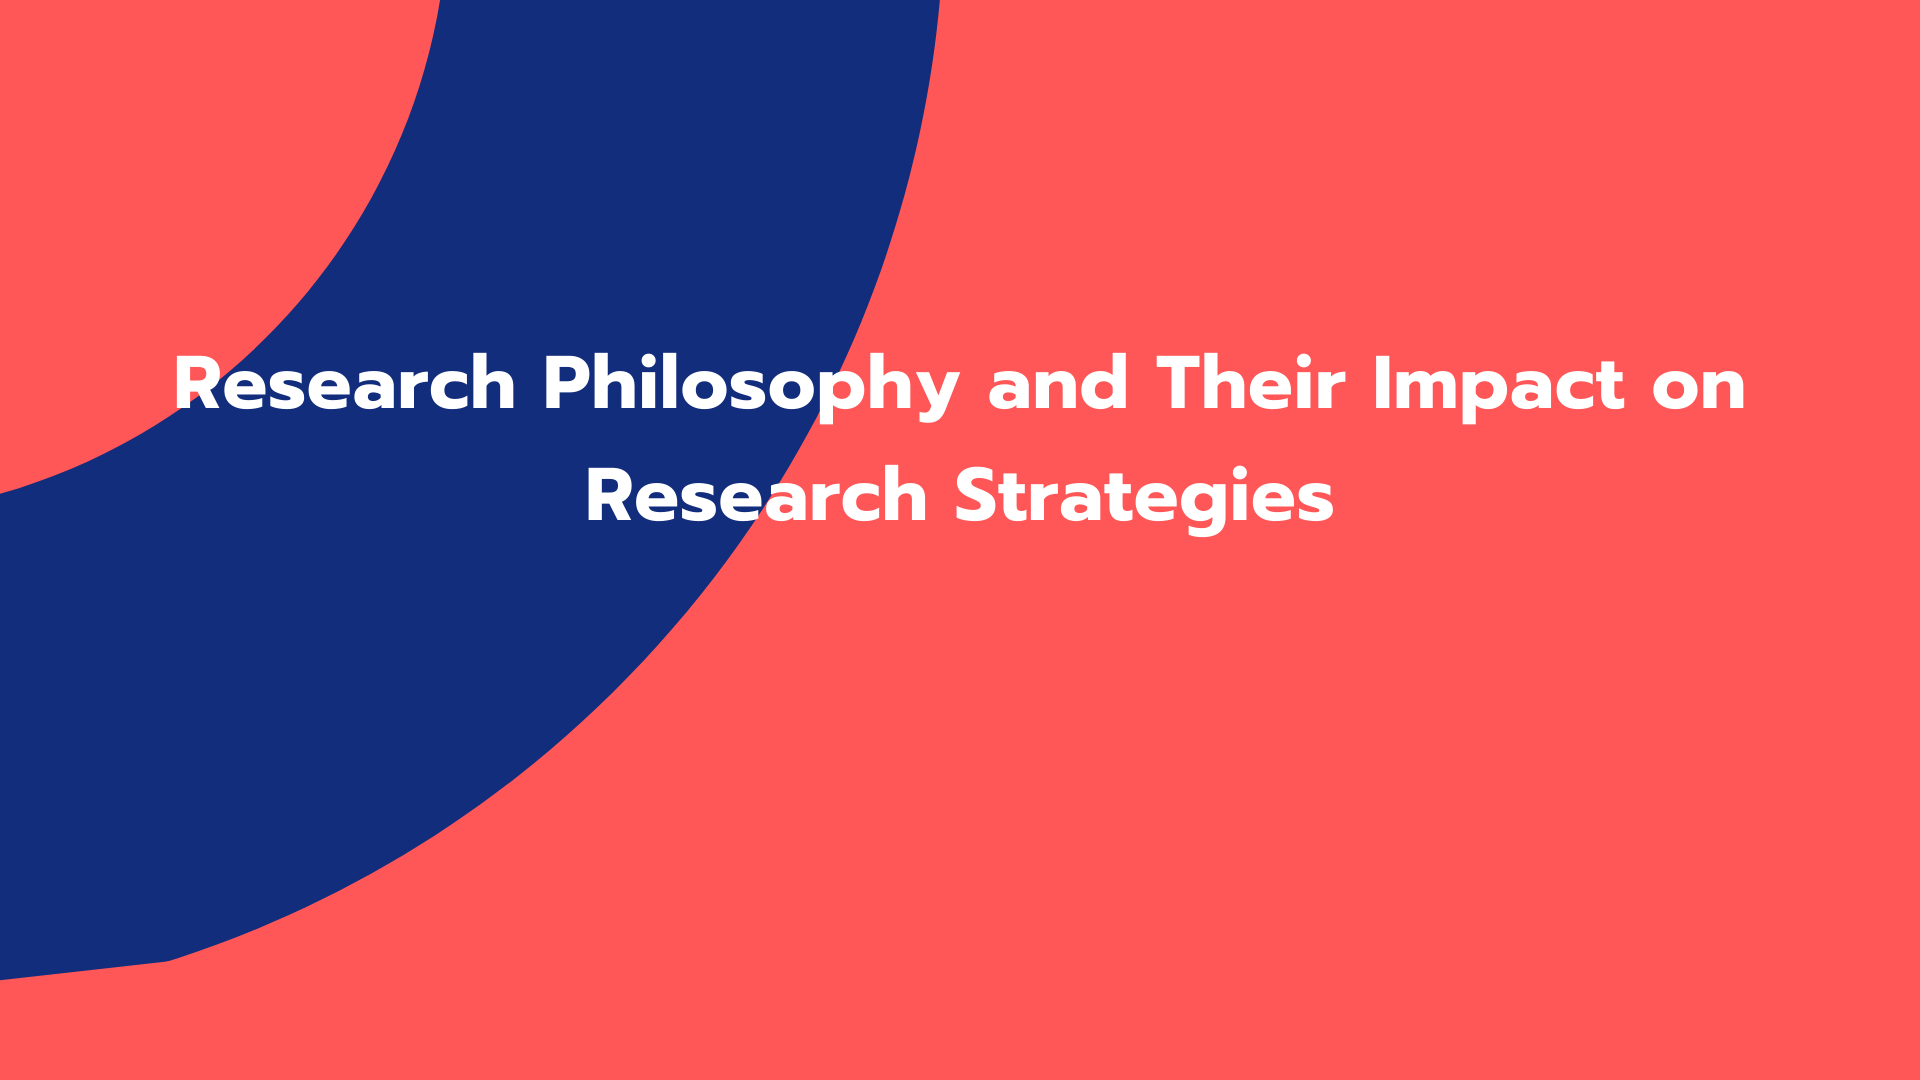 Research Philosophy and Their Impact on Research Strategies